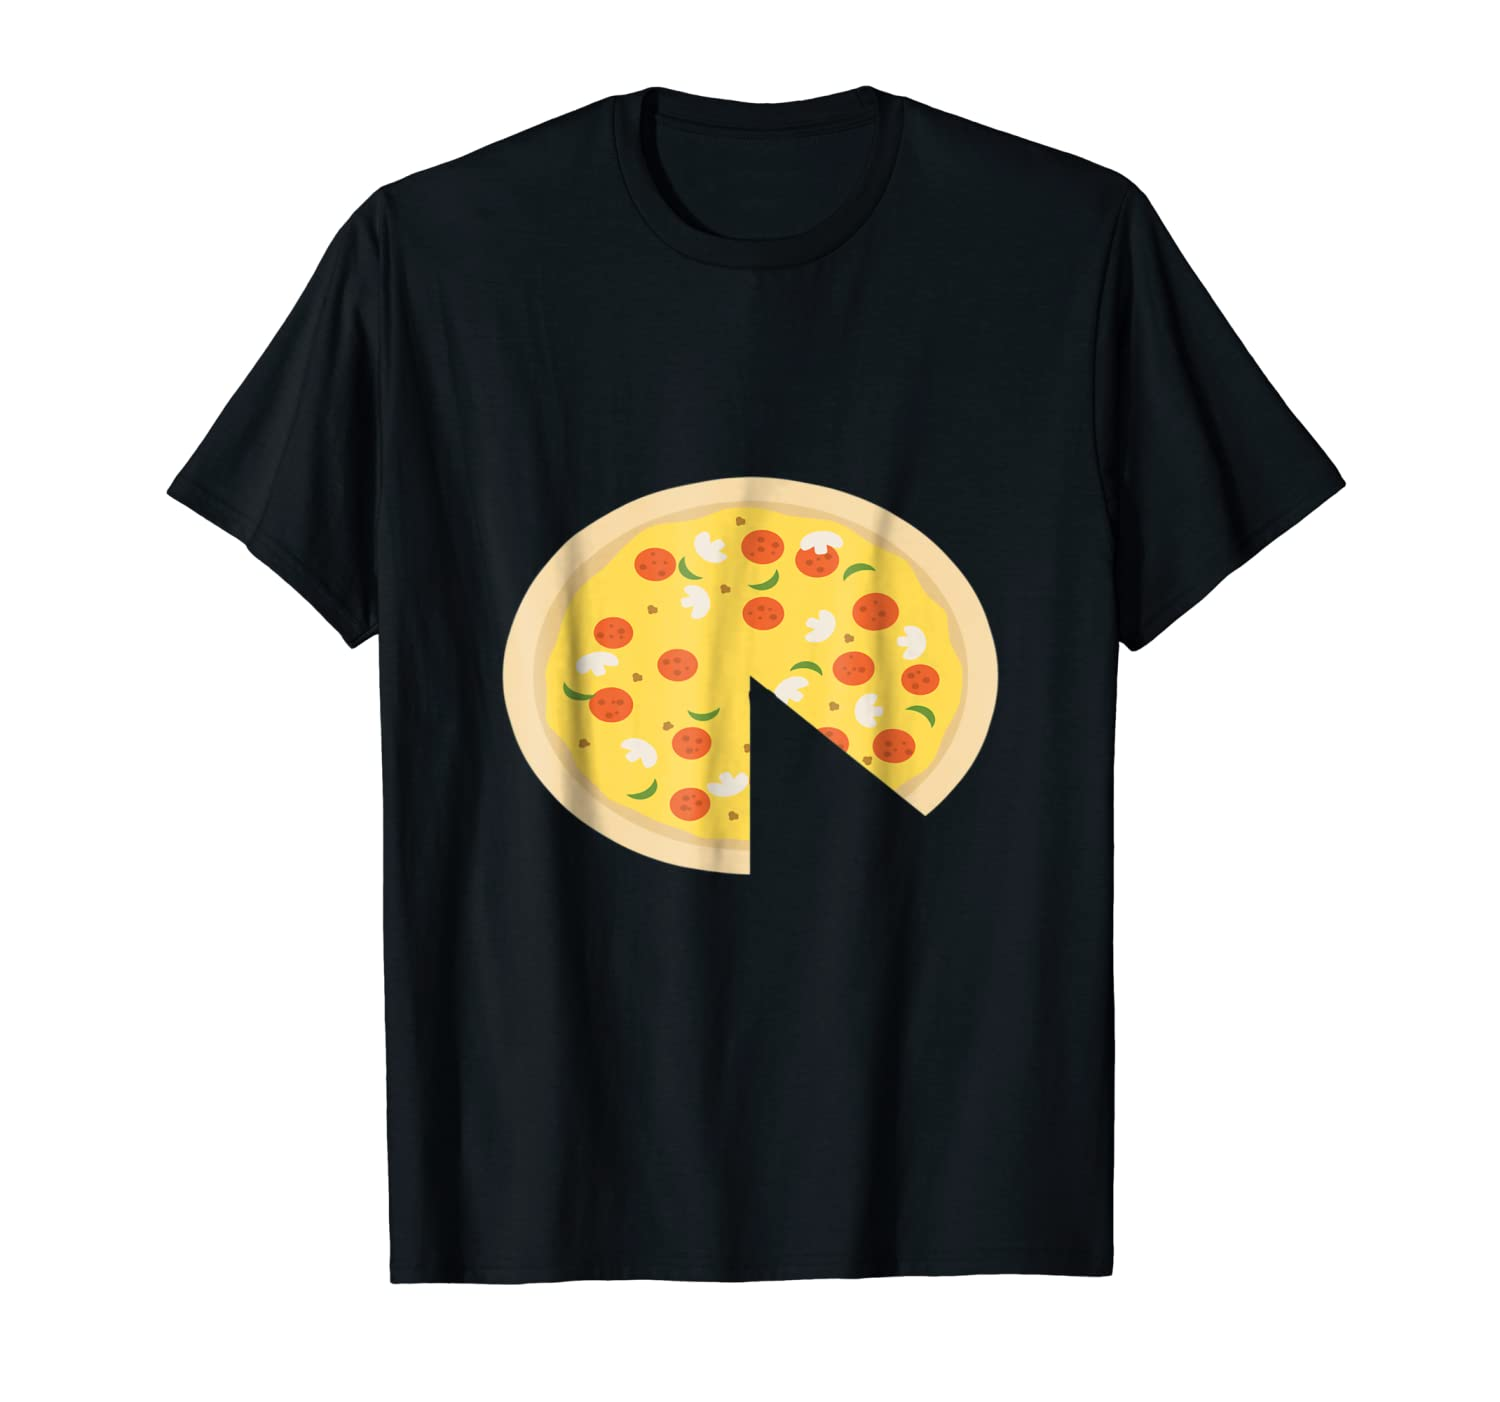 c954f1b84 Amazon.com: Mens Pizza Piece Slice Missing Father Son Funny Cute T-Shirt:  Clothing